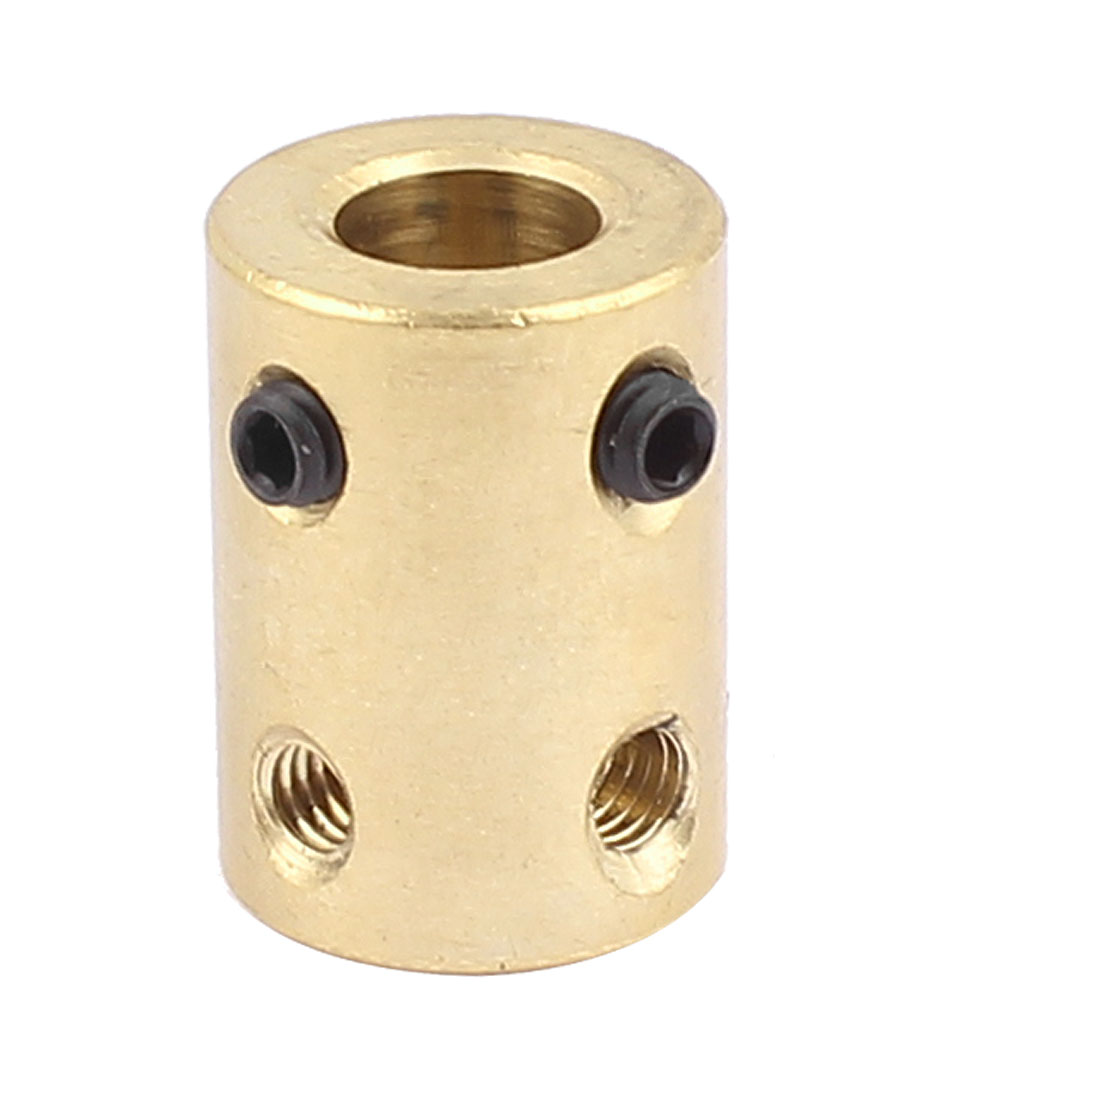 6.38mm to 8mm Copper DIY Motor Shaft Coupling Joint Adapter for Electric Car Toy